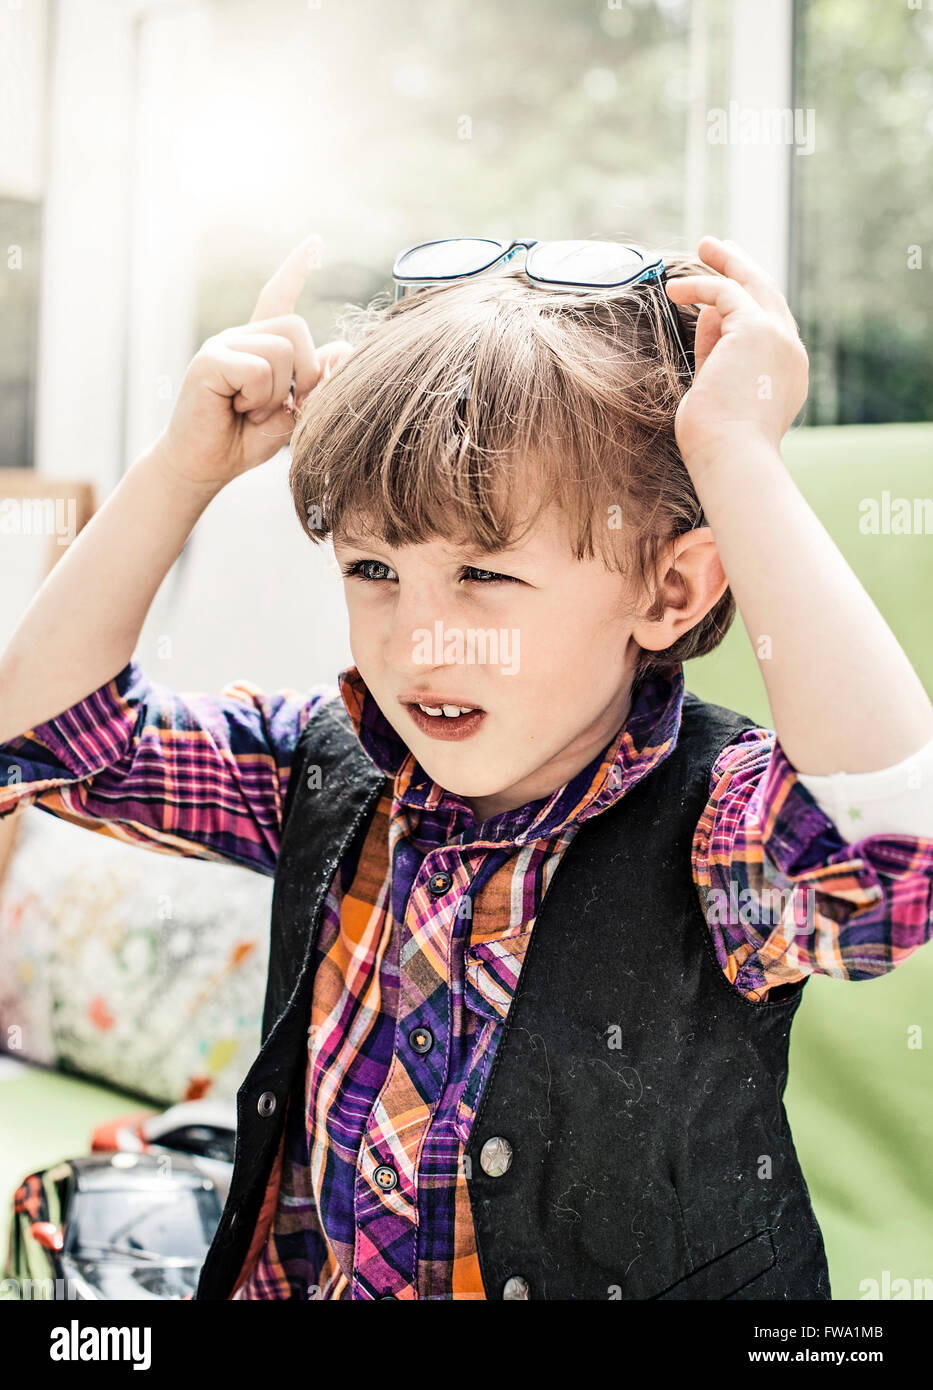 a small boy with sun glasses - Stock Image